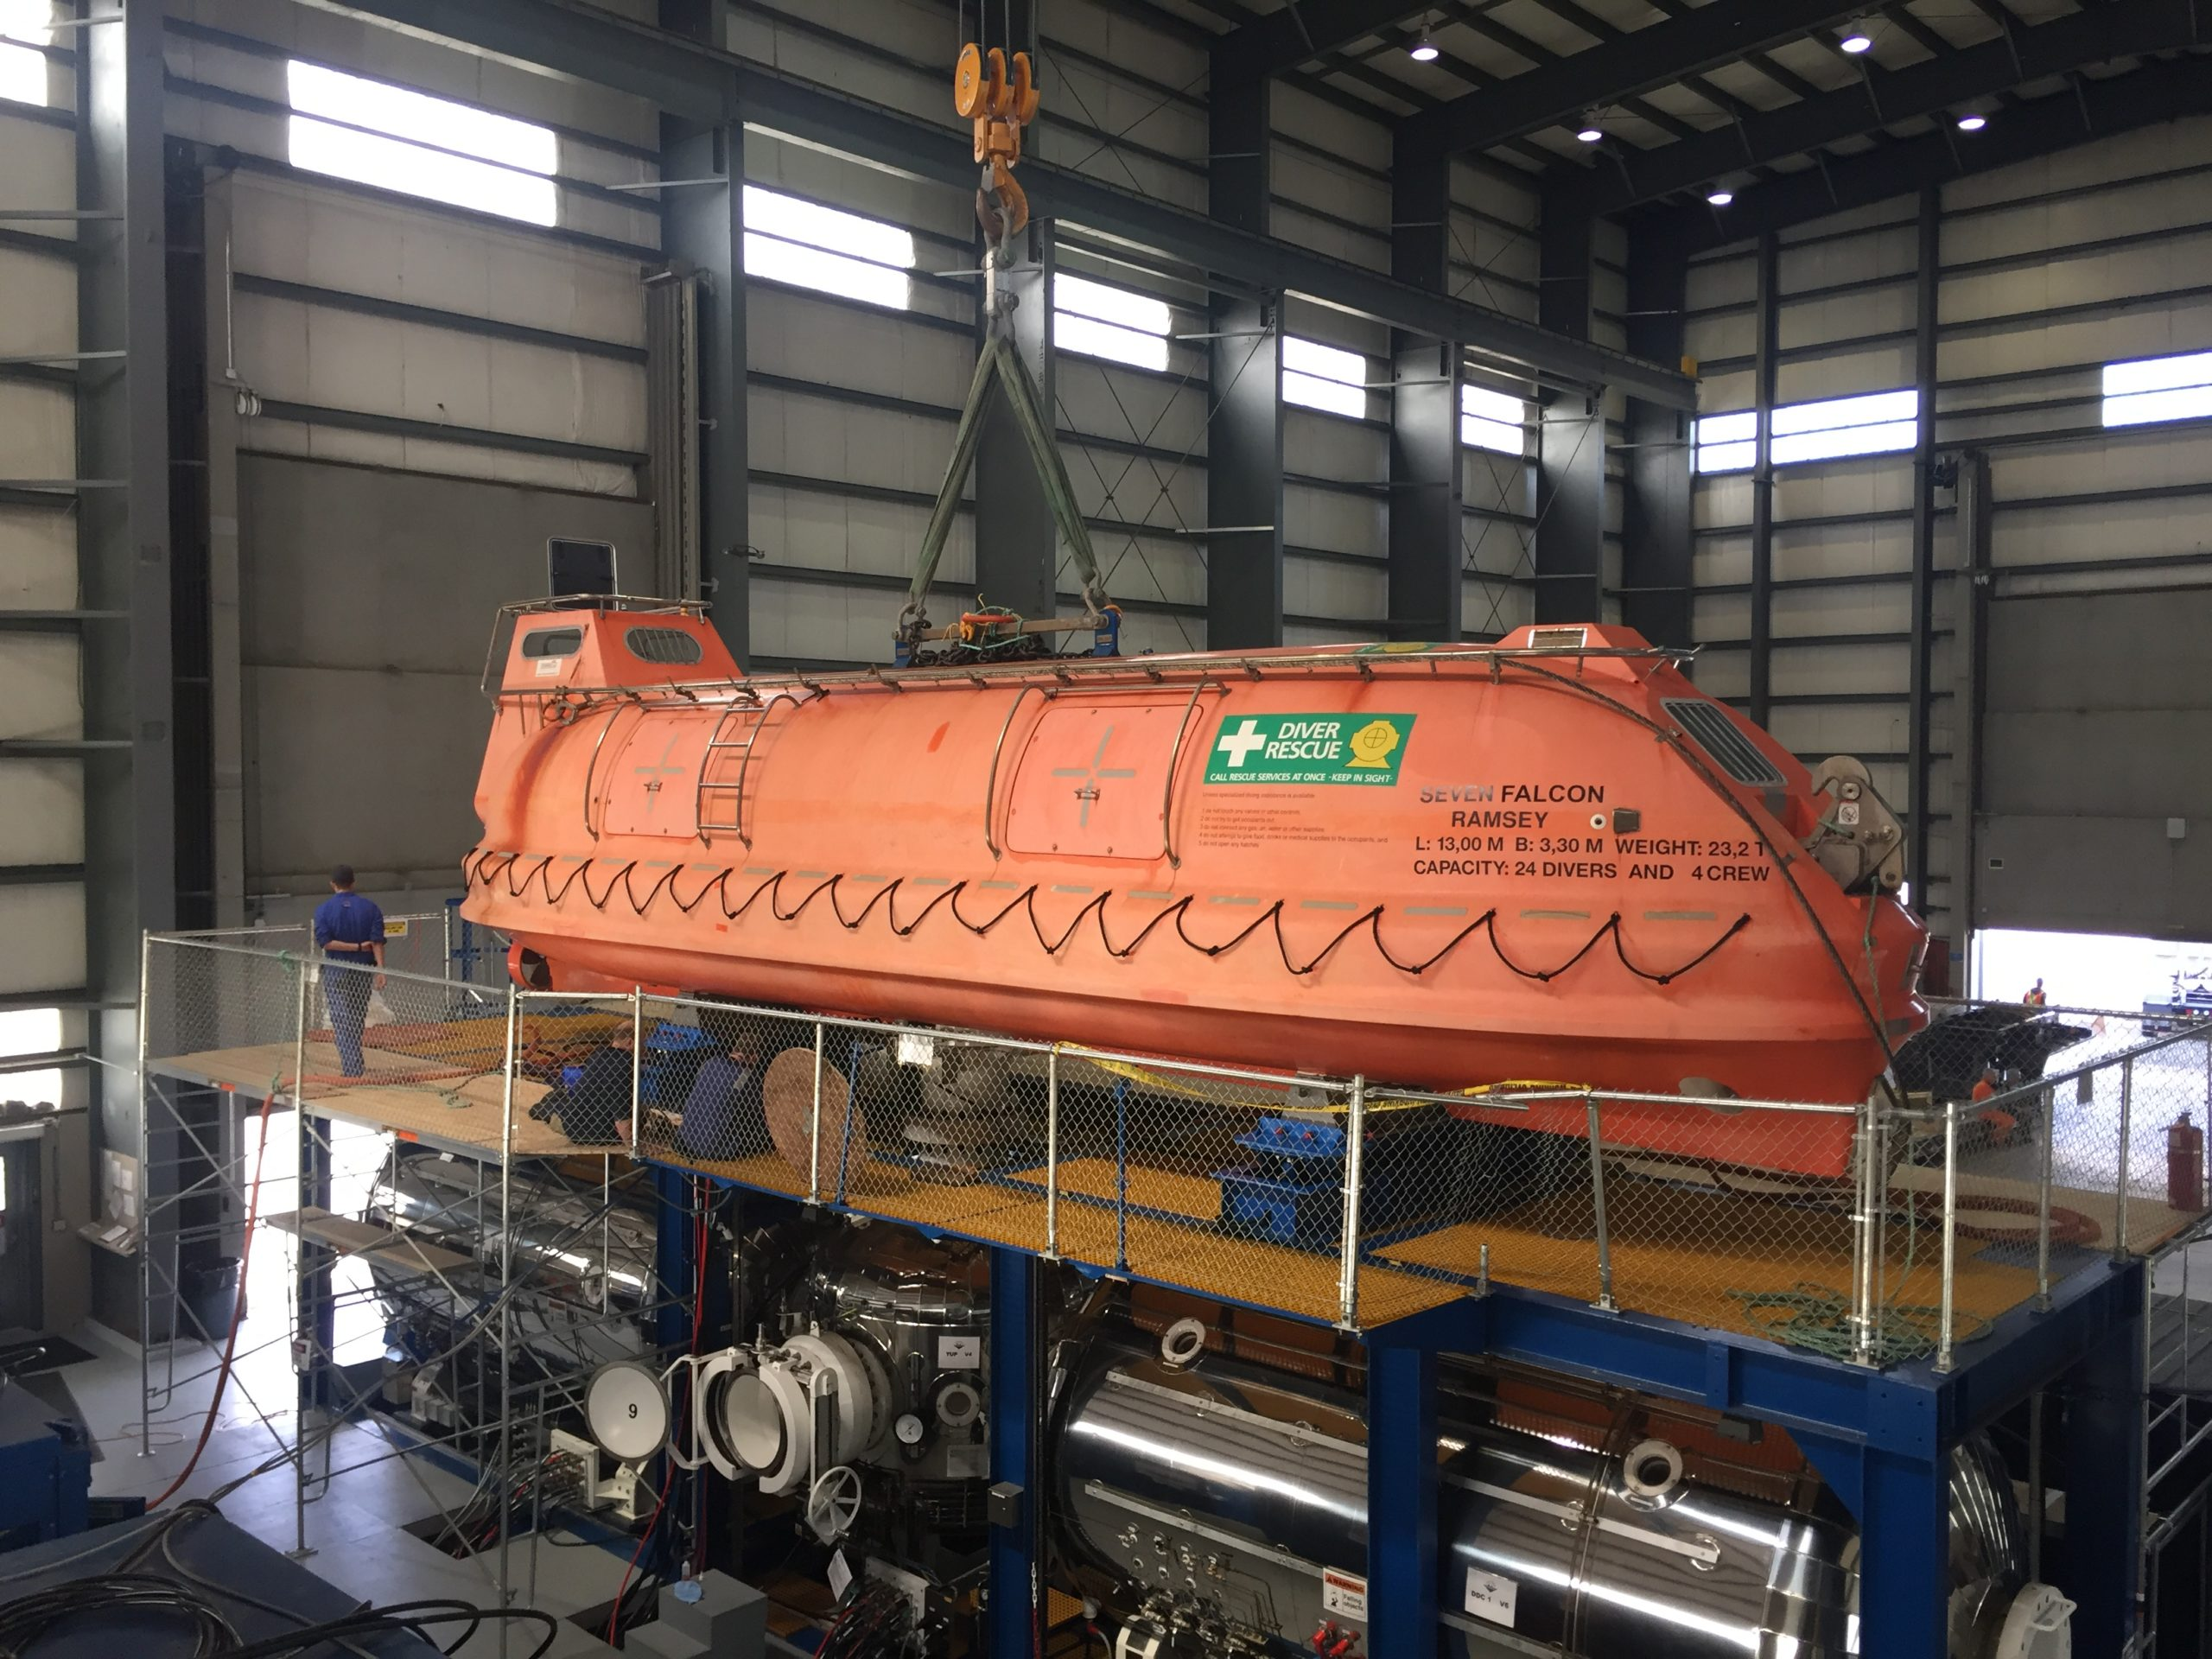 HLB to HRF Mating Trials – DSV Seven Falcon